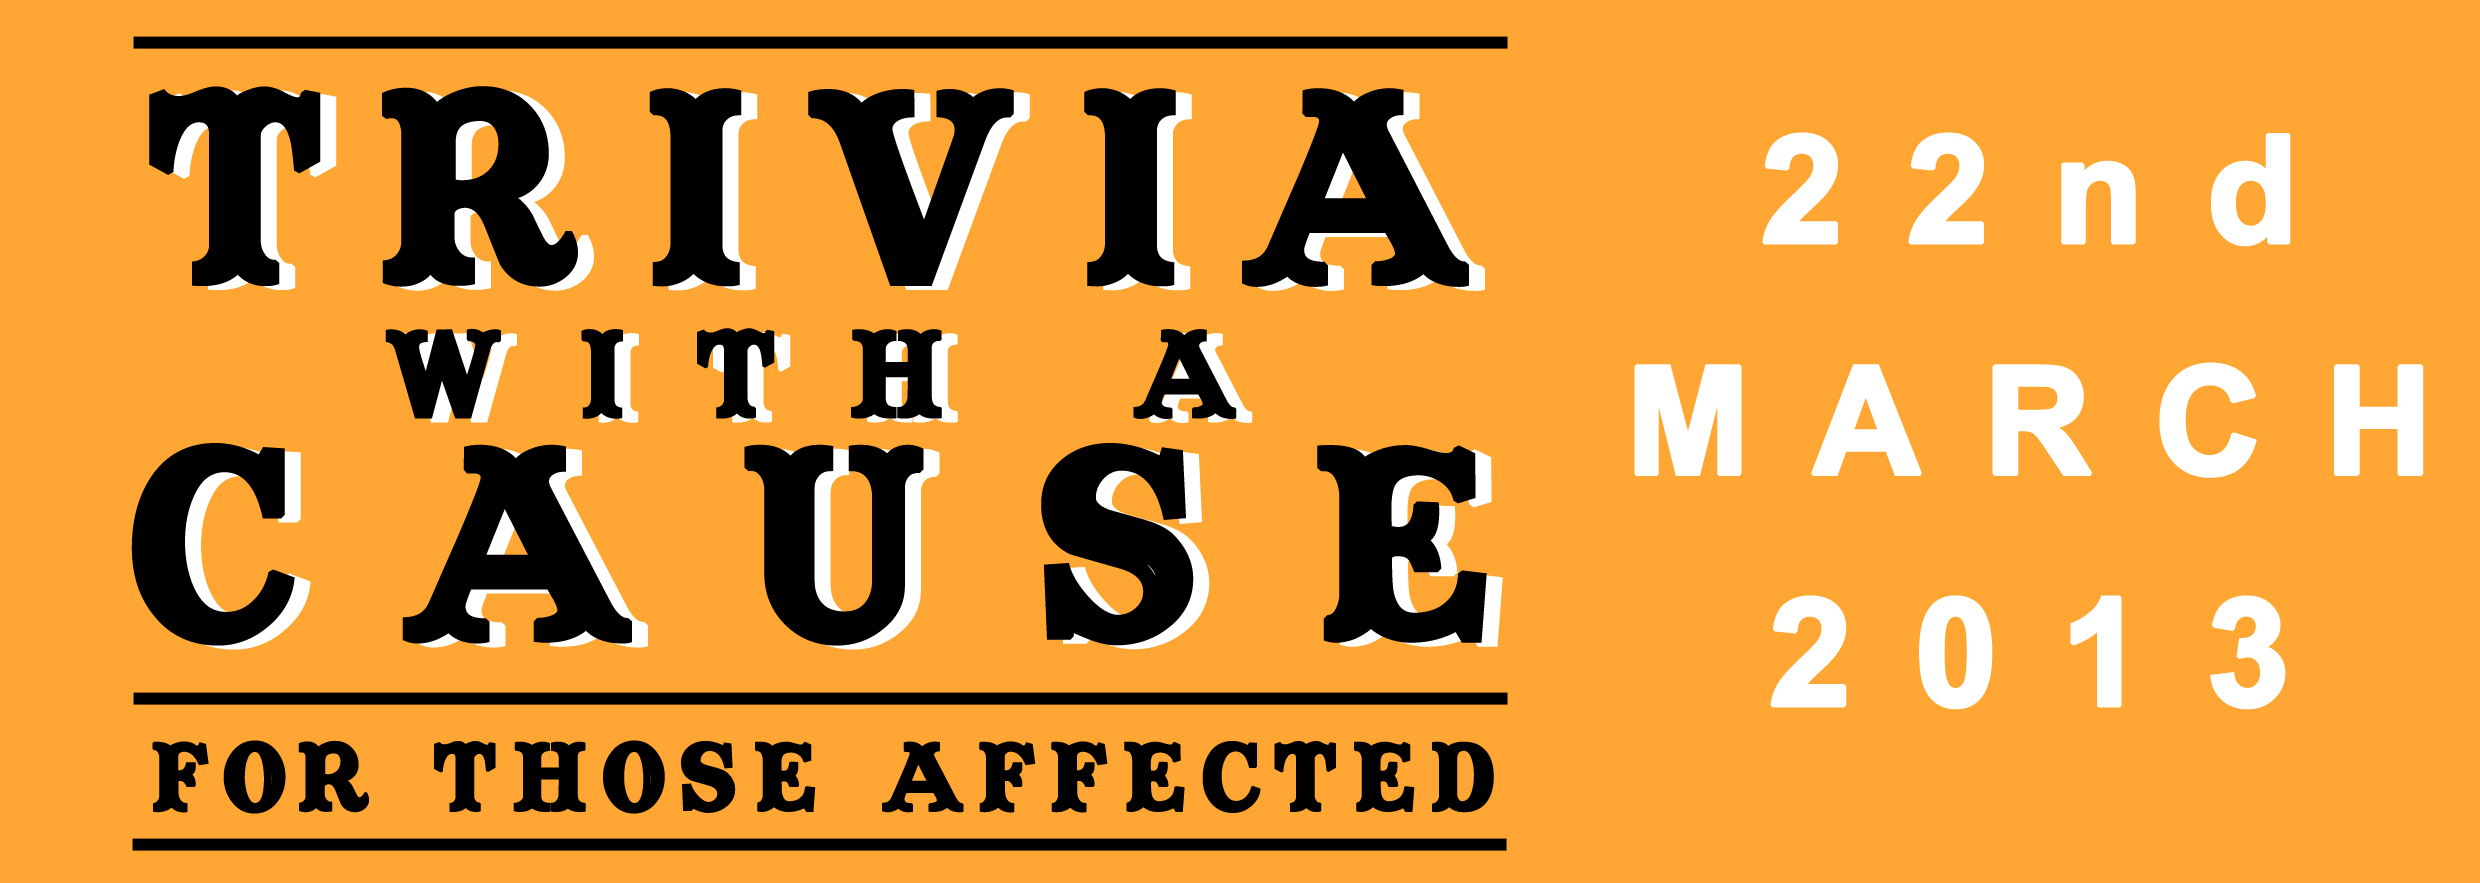 Tickets for Trivia With A Cause in Marrickville from Ticketbooth